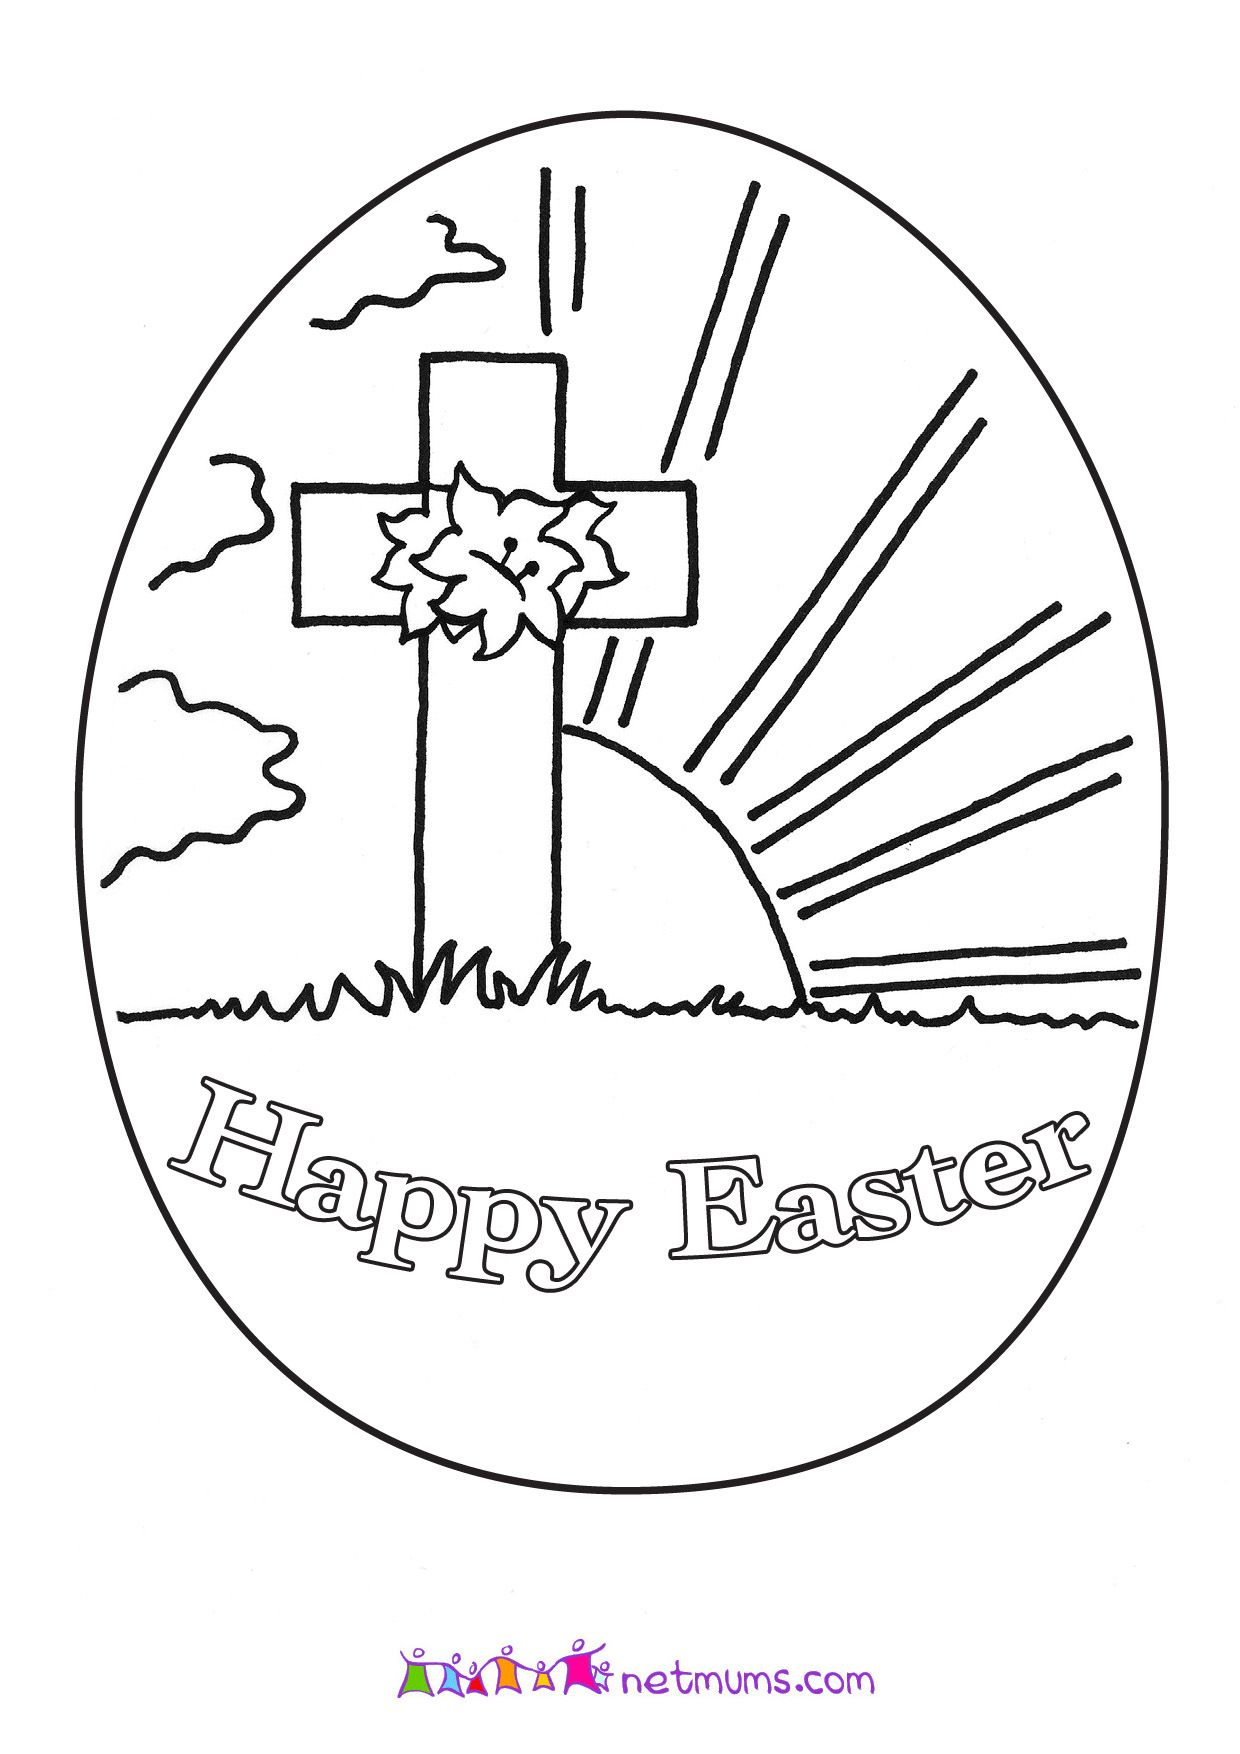 Easter Thirtyfour Jpg 1240 1754 Easter Coloring Pages Easter Colouring Easter Coloring Sheets